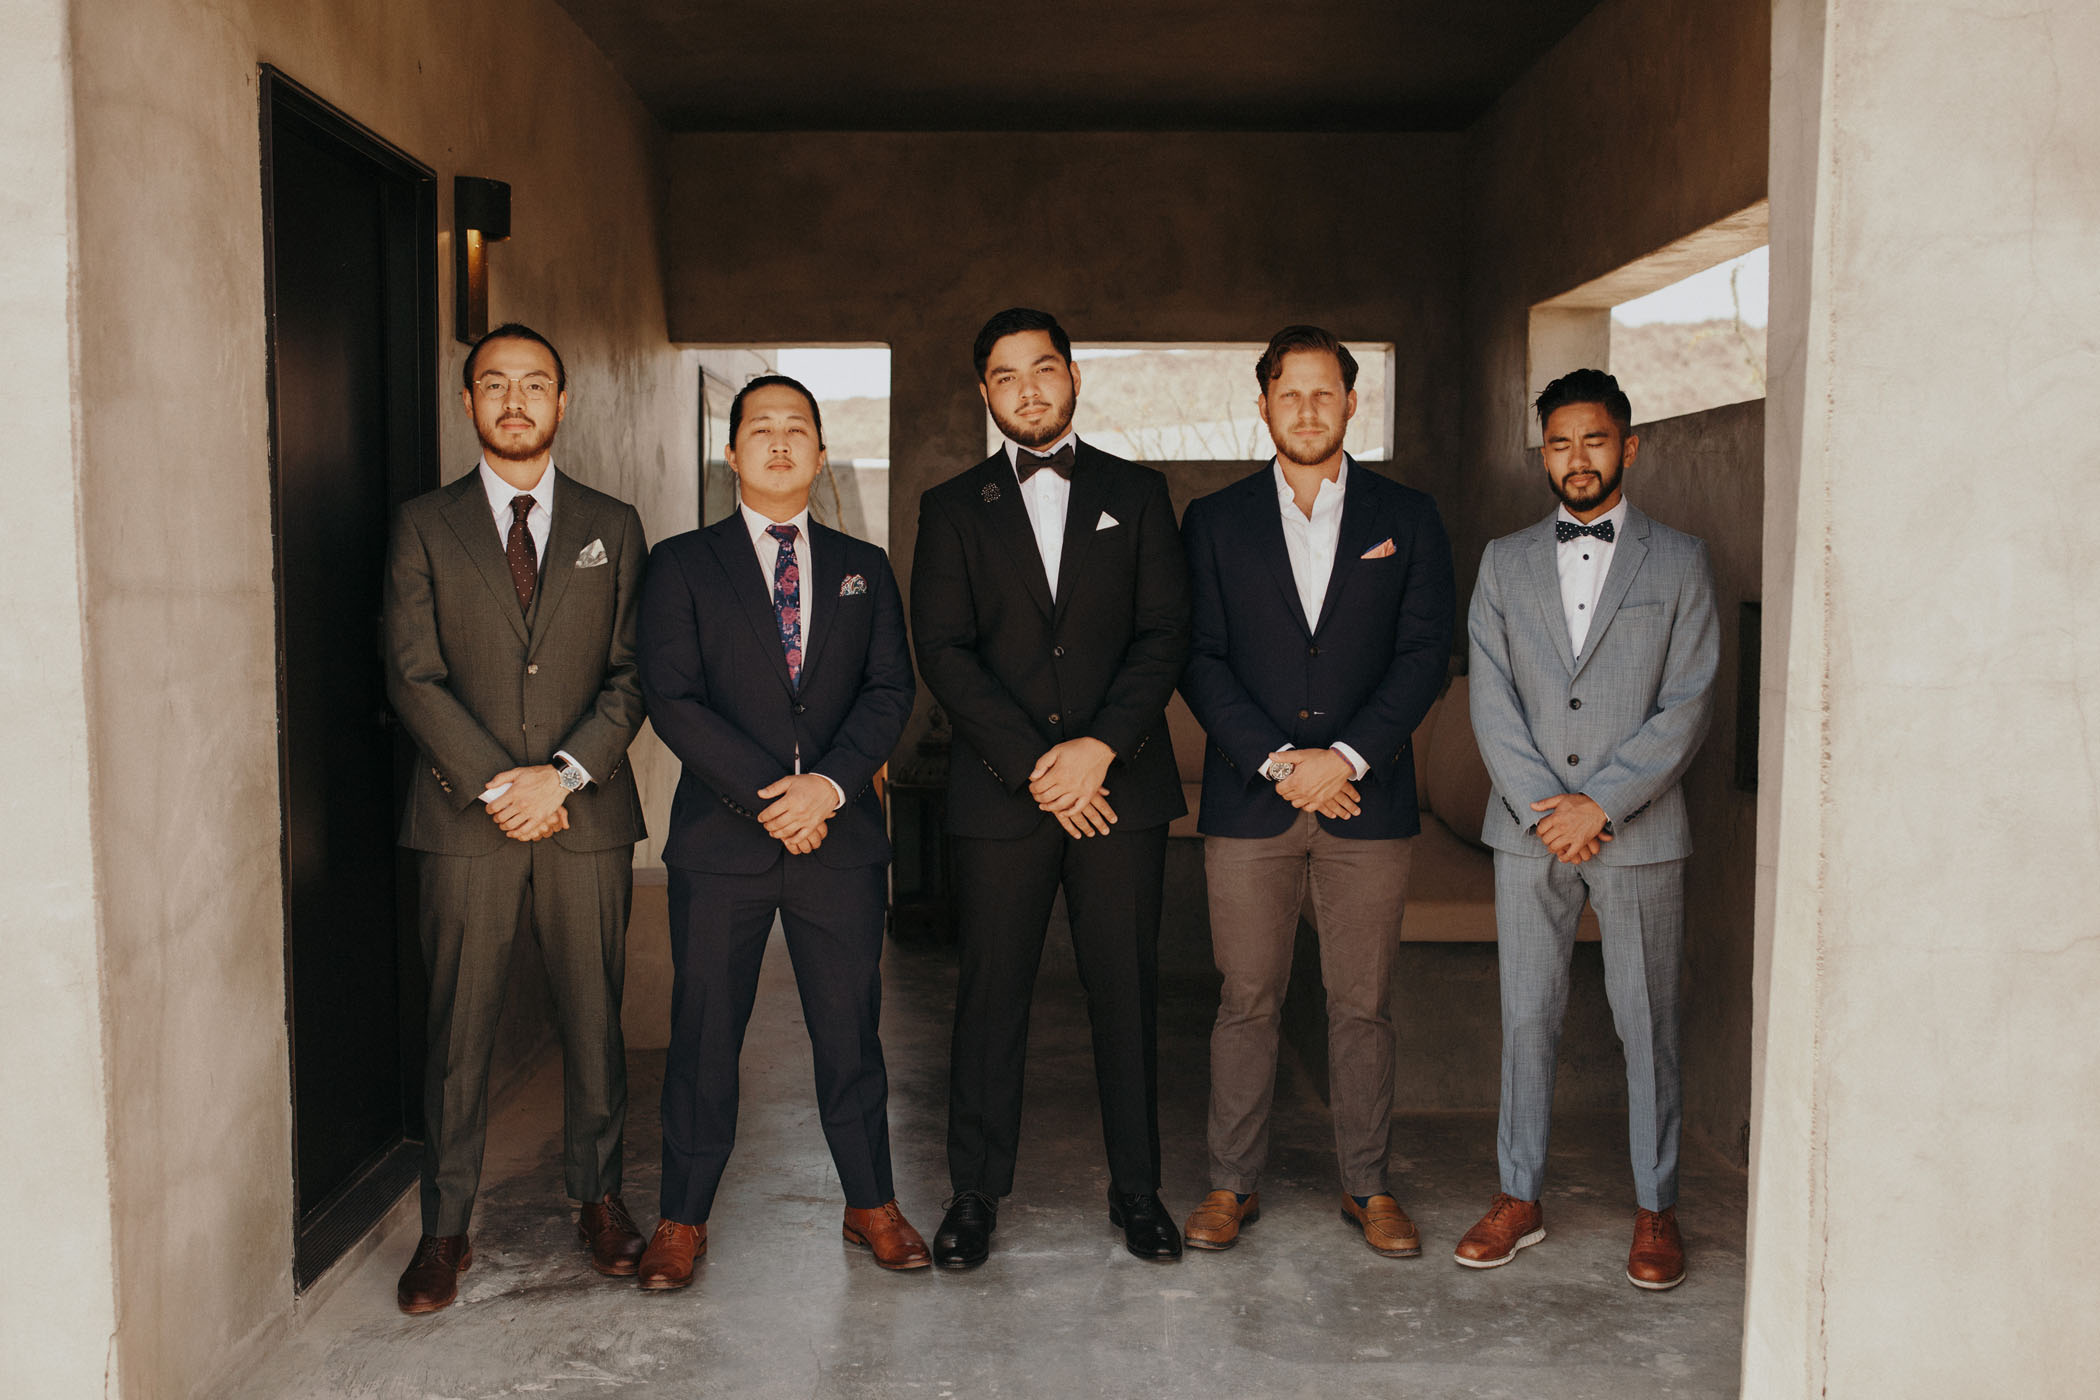 groomsmen in mismatched colored suits